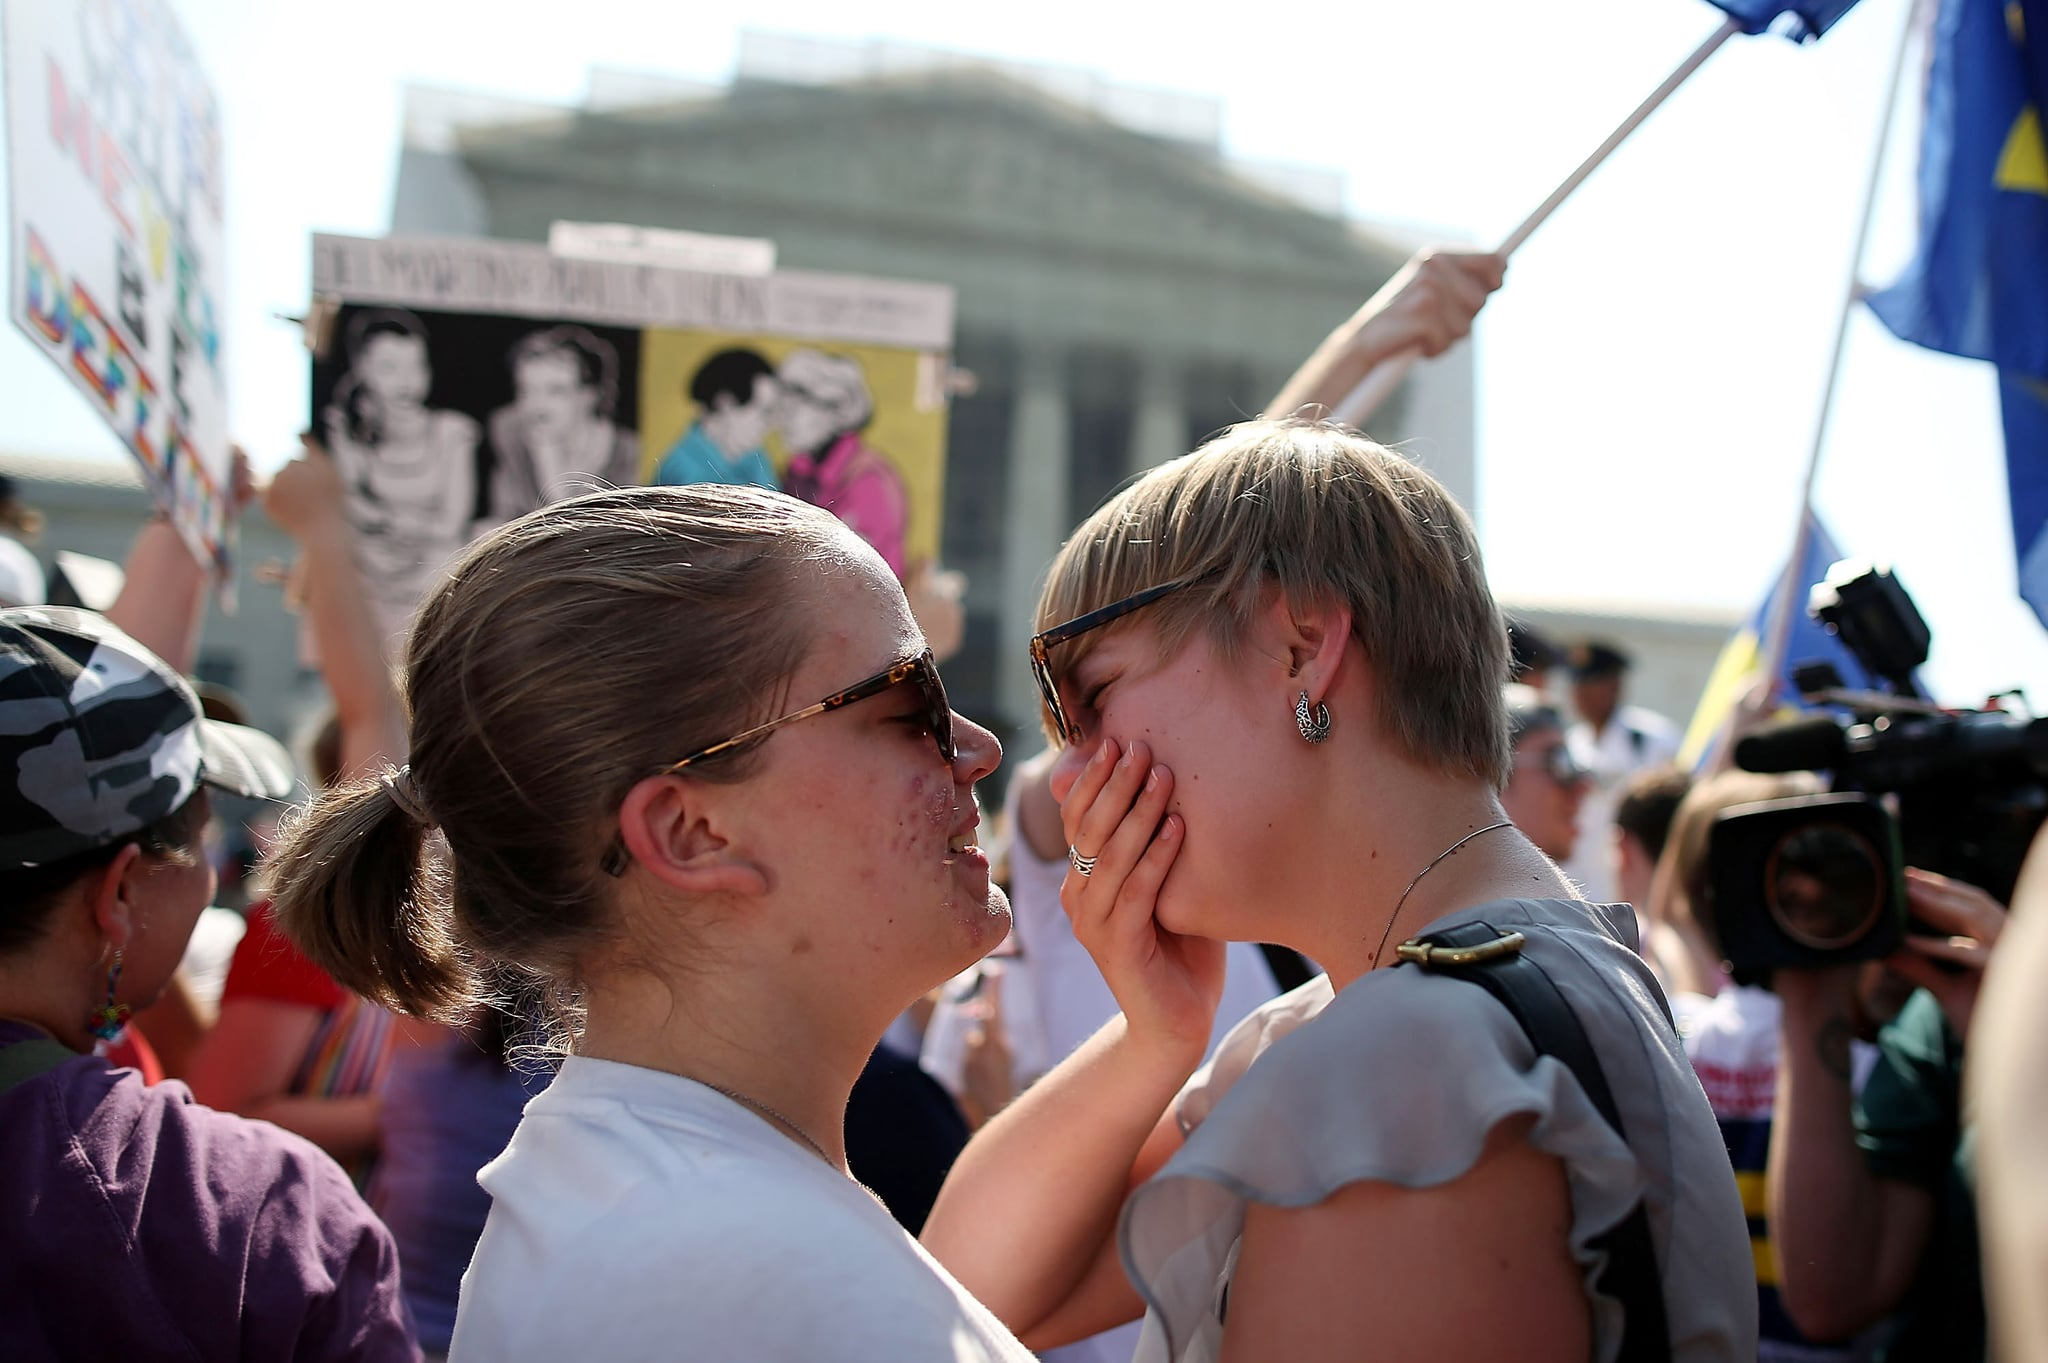 Supporters of gay rights could not contain their happiness outside the US Supreme Court in Washington DC.